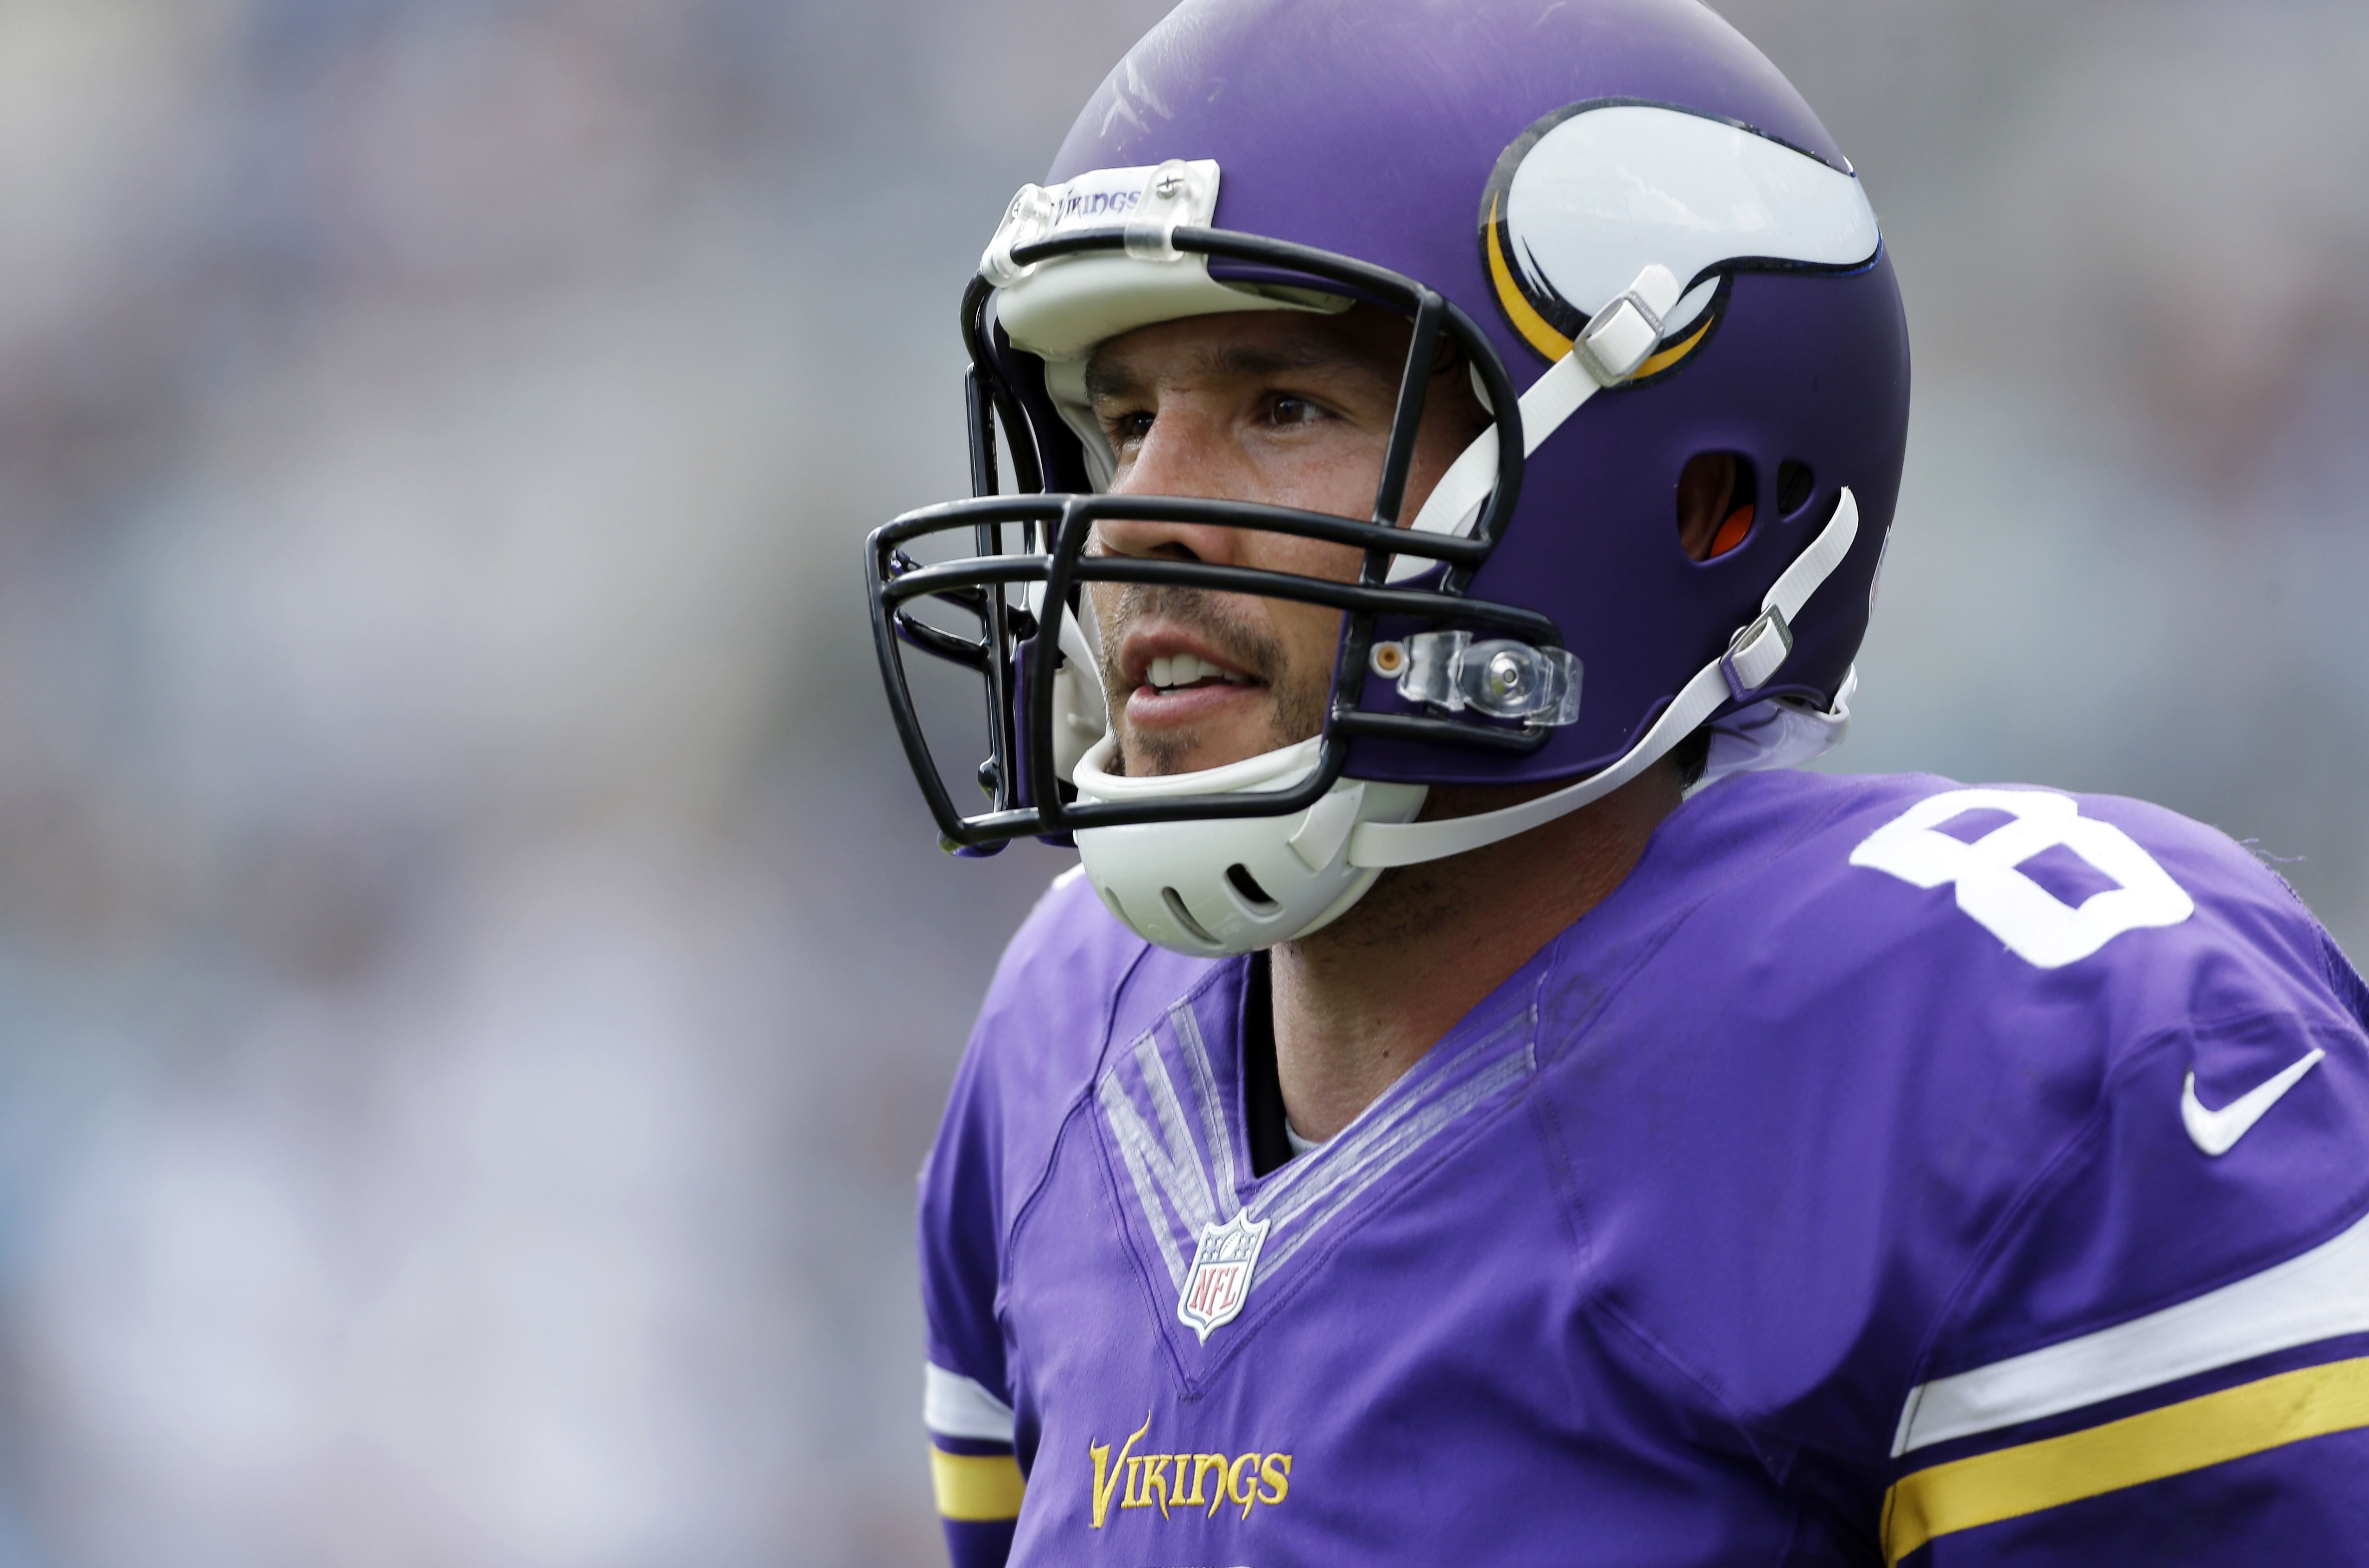 FILE - In this Sept. 18, 2016, file photo, Minnesota Vikings' Sam Bradford stands on the sidelines during the second half of an NFL football game against the Carolina Panthers in Charlotte, N.C. The former Eagles quarterback returns to Philadelphia for th